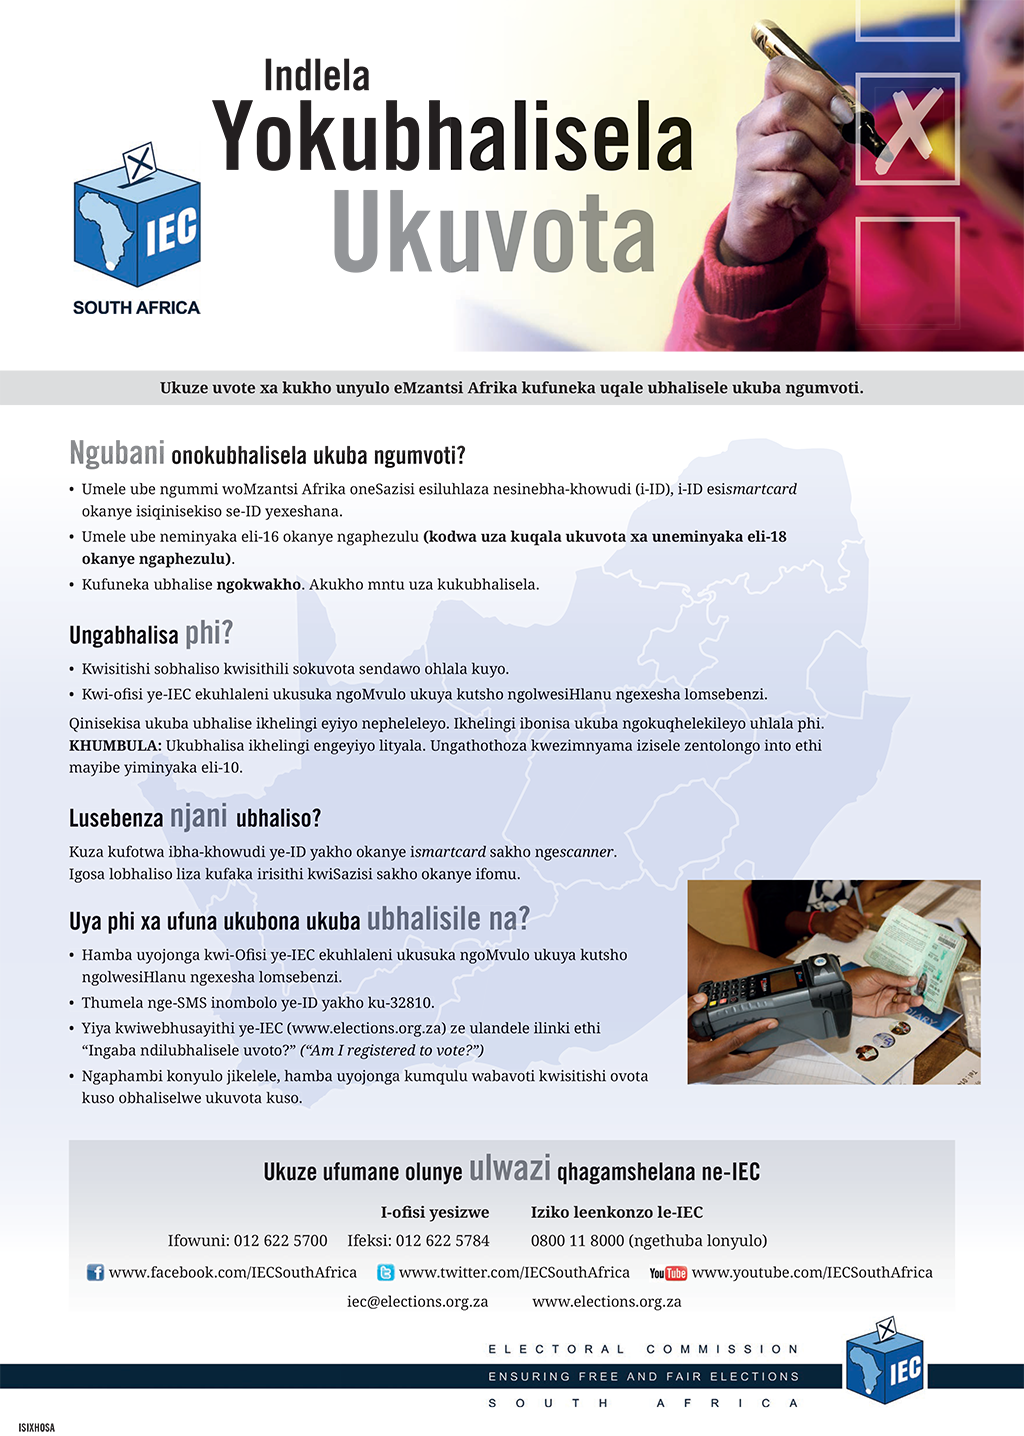 IEC Poster - How to Register Xhosa